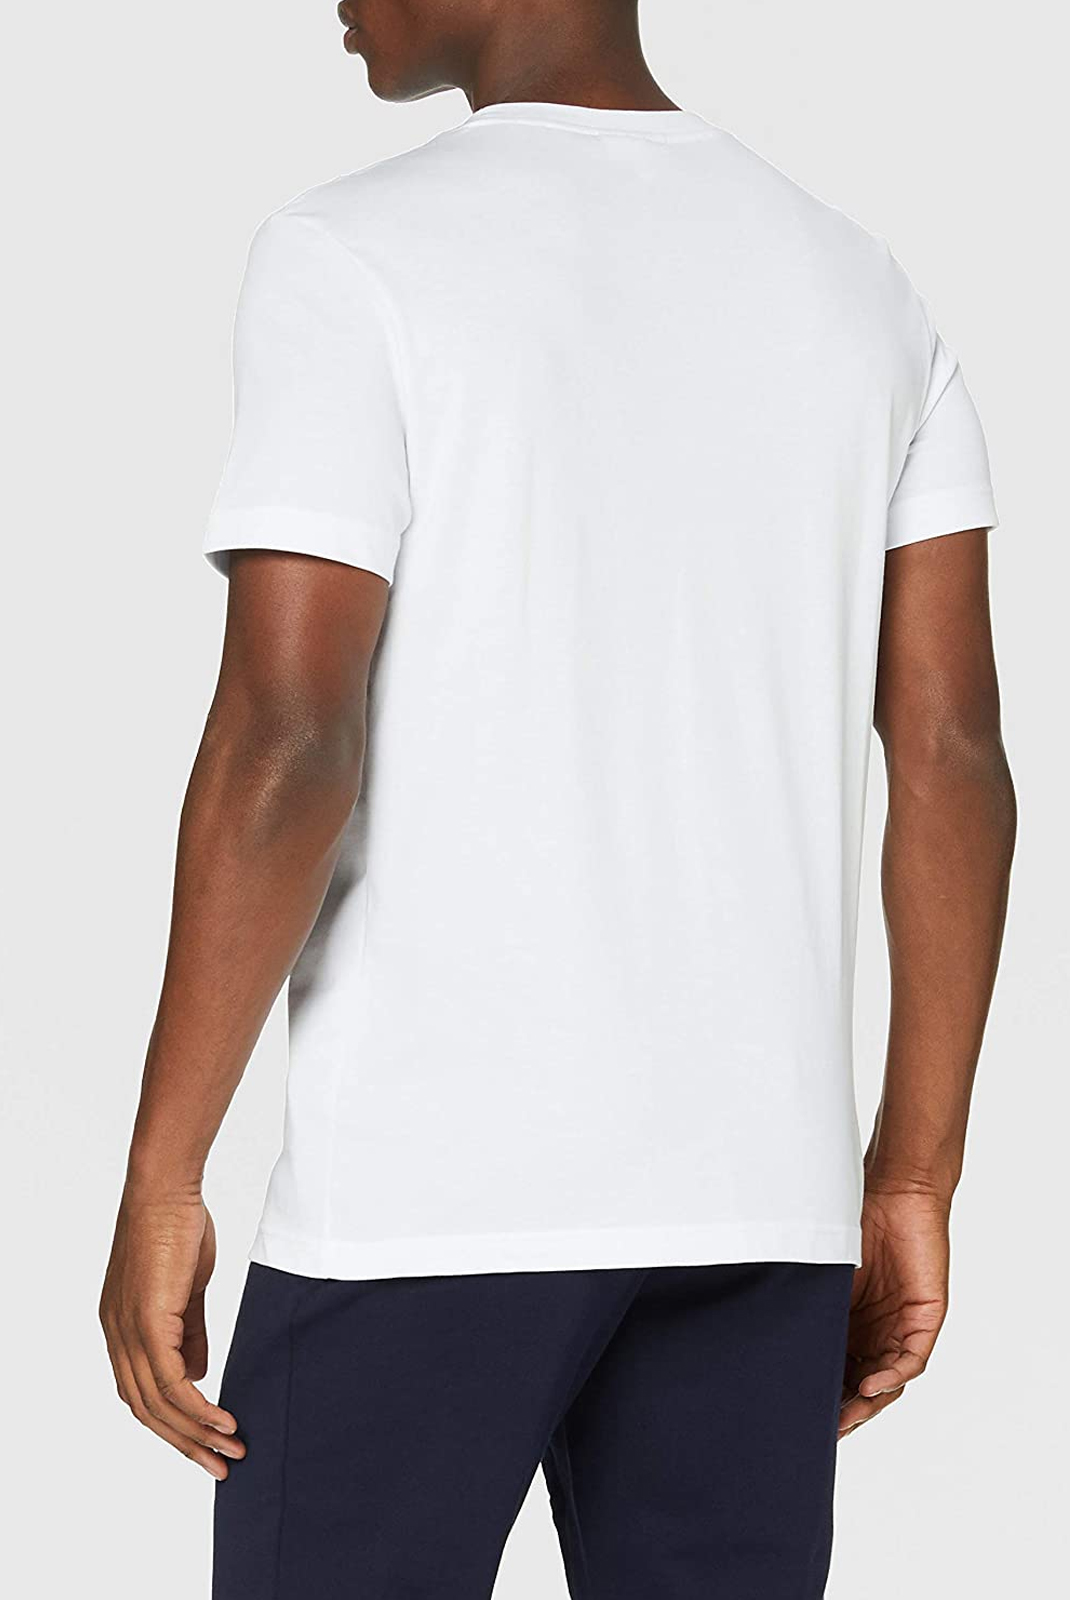 T-S manches courtes  Lacoste TH7222 00 001 WHITE